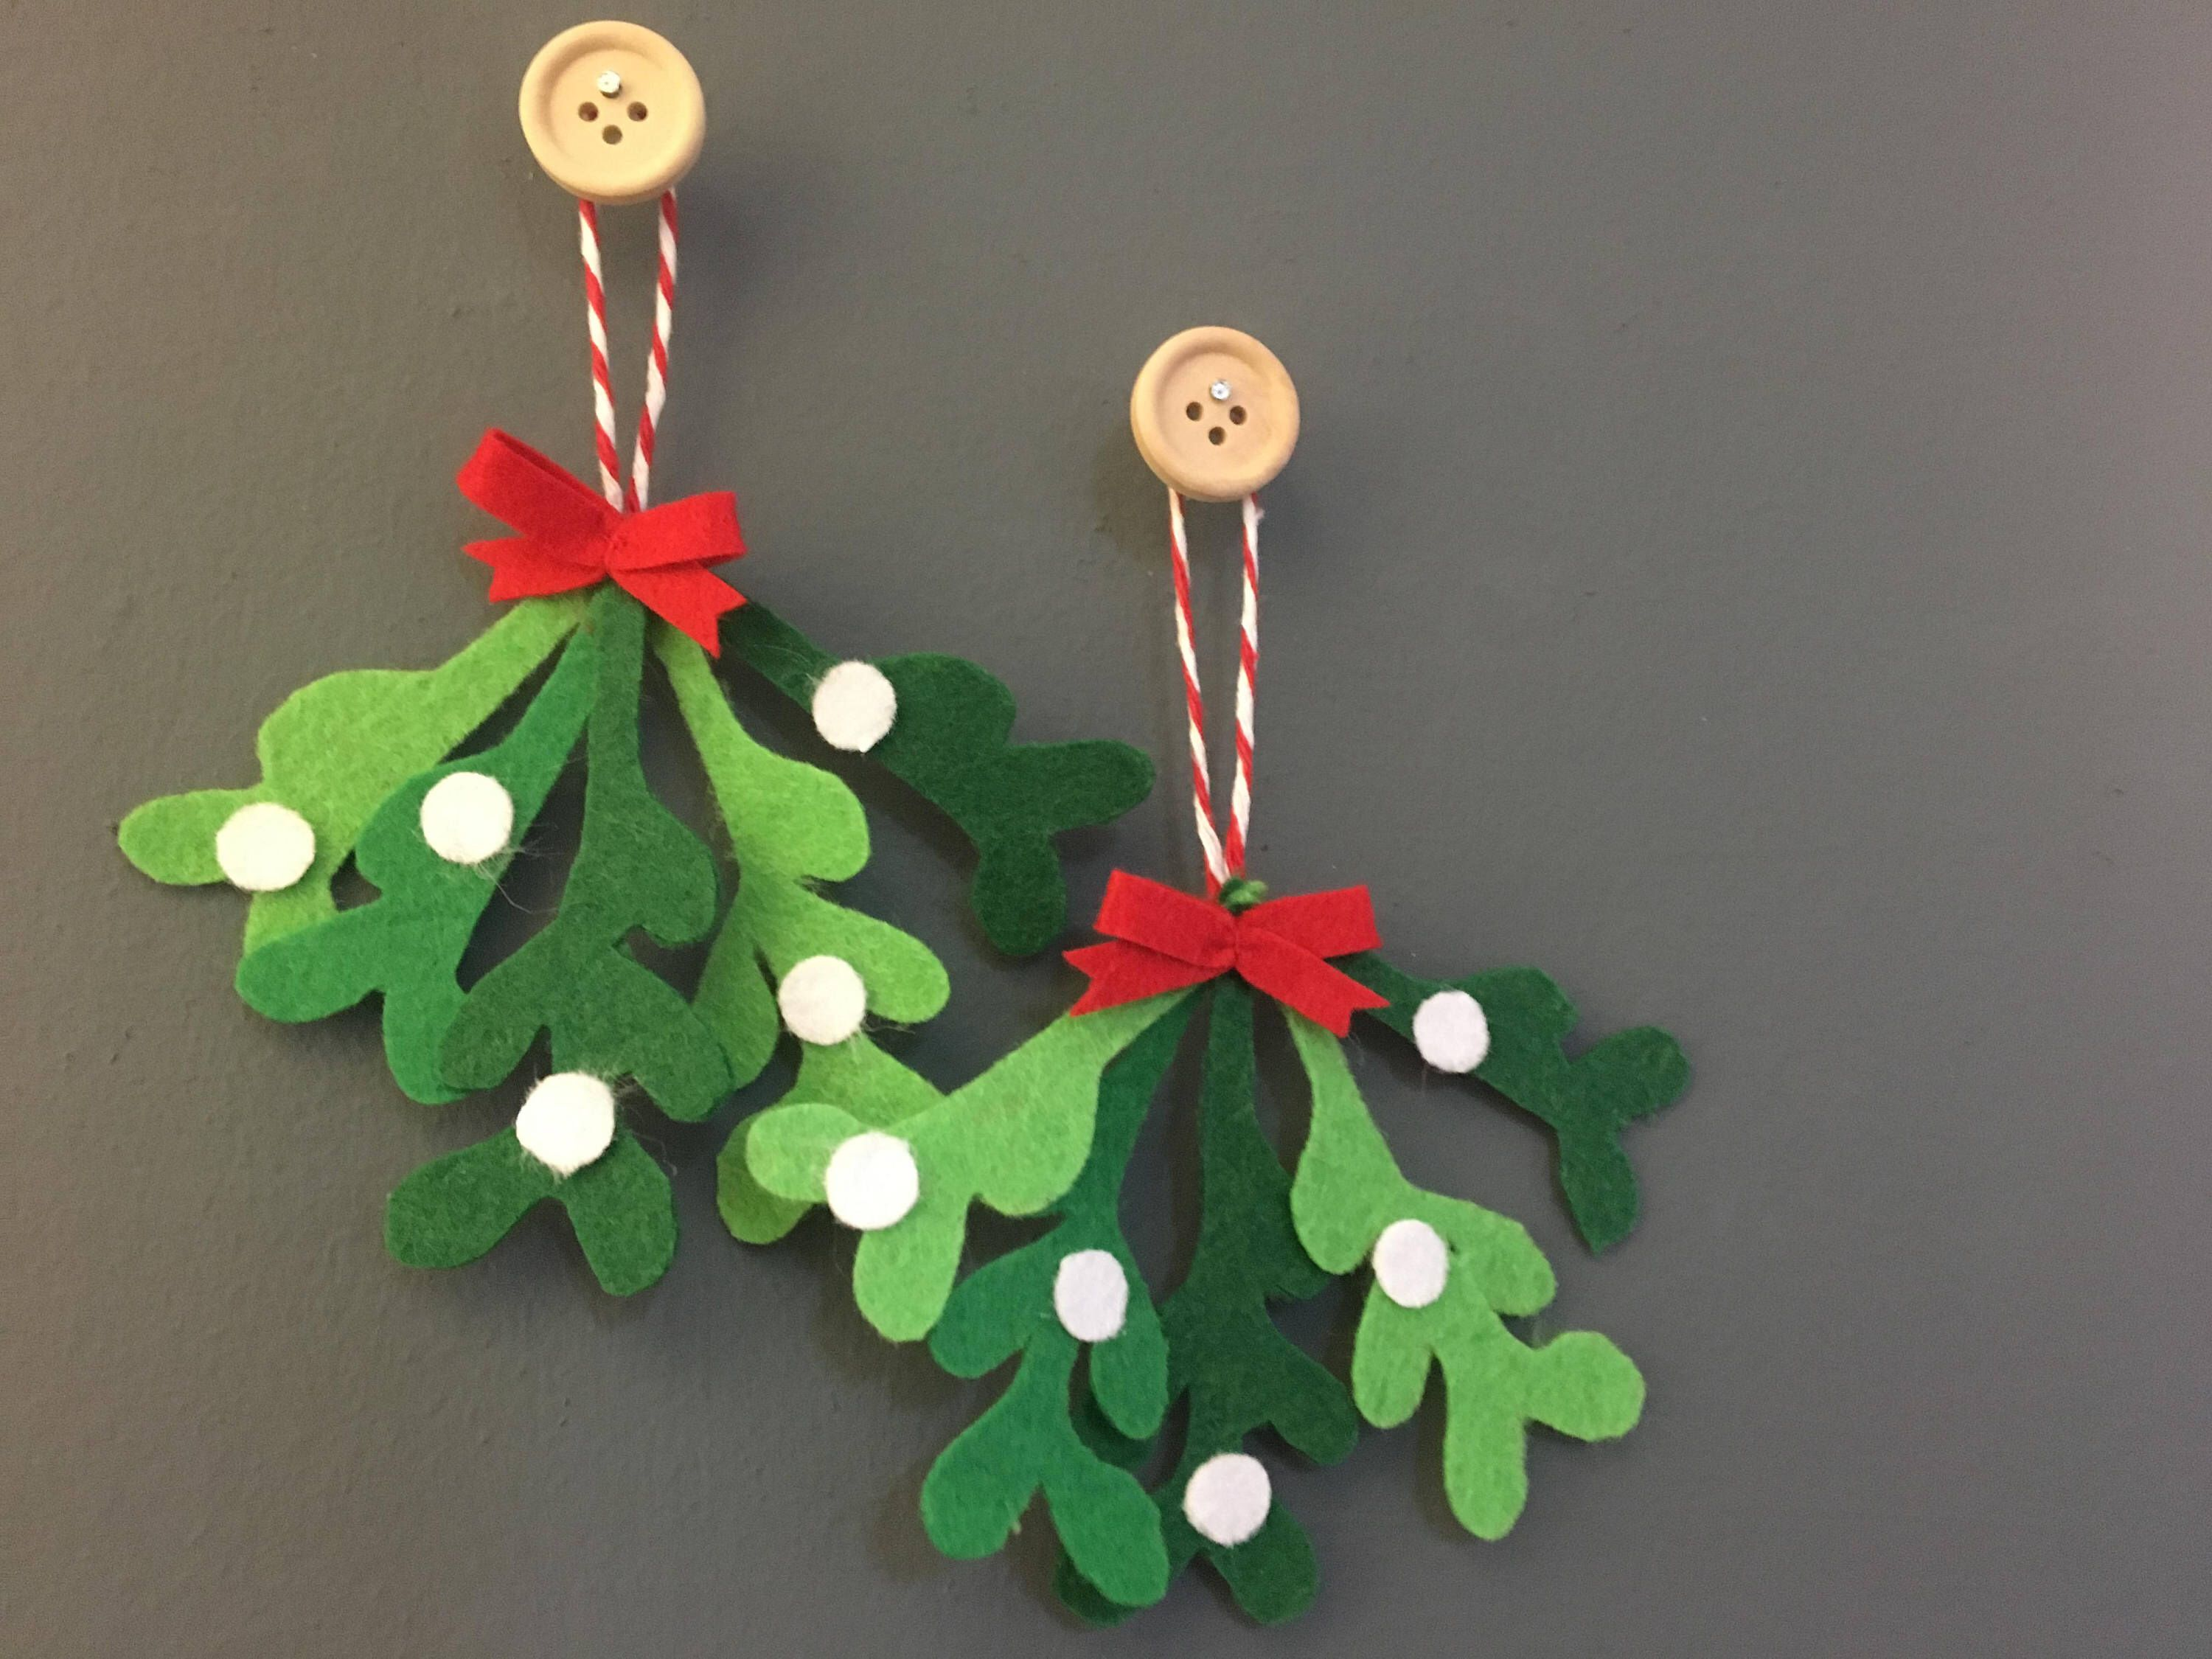 Handmade Felt Christmas Mistletoe Hanging Decorations By Twoandyoudesigns On Etsy Http Handmade Christmas Decorations Felt Christmas Ornaments Christmas Crafts